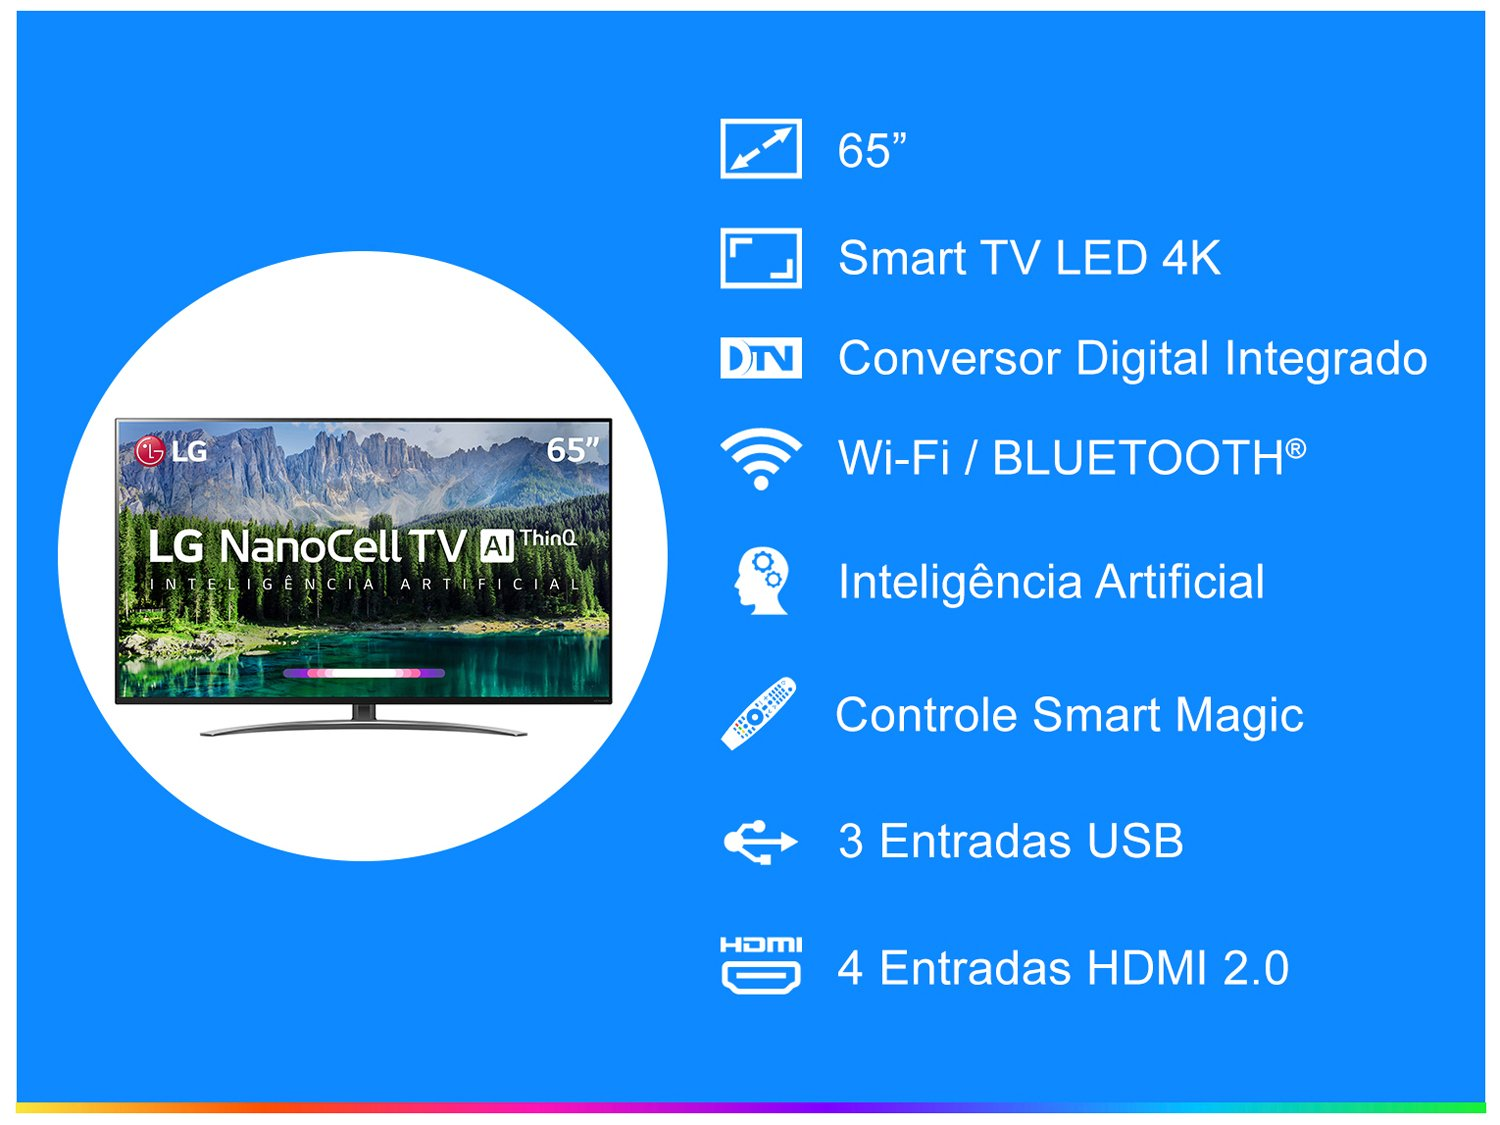 "Smart TV LED 65"" UHD 4K LG 65SM8600PSA NanoCell, ThinQ AI Inteligência Artificial IoT, IPS, HDR, Dolby Vision, Dolby Atmos e Controle Smart Magic - 1"